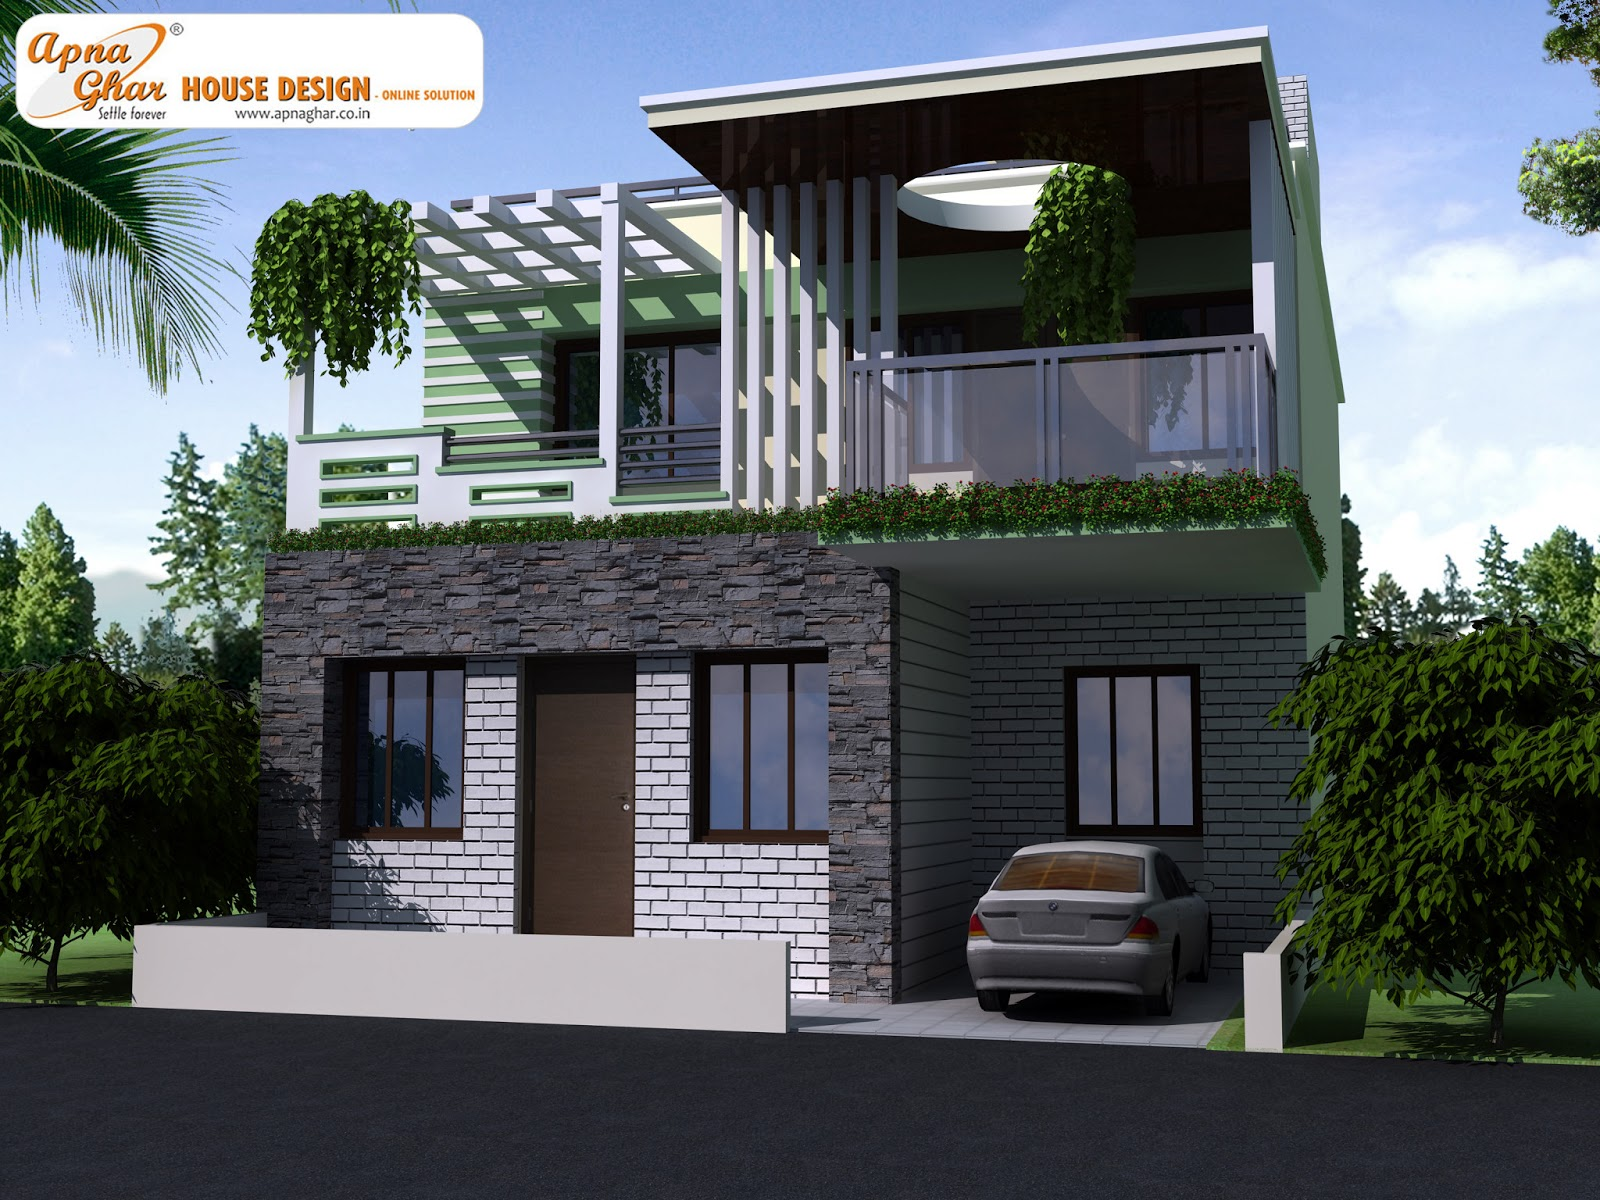 Apnaghar complete architectural solution page 41 for Duplex home plan design